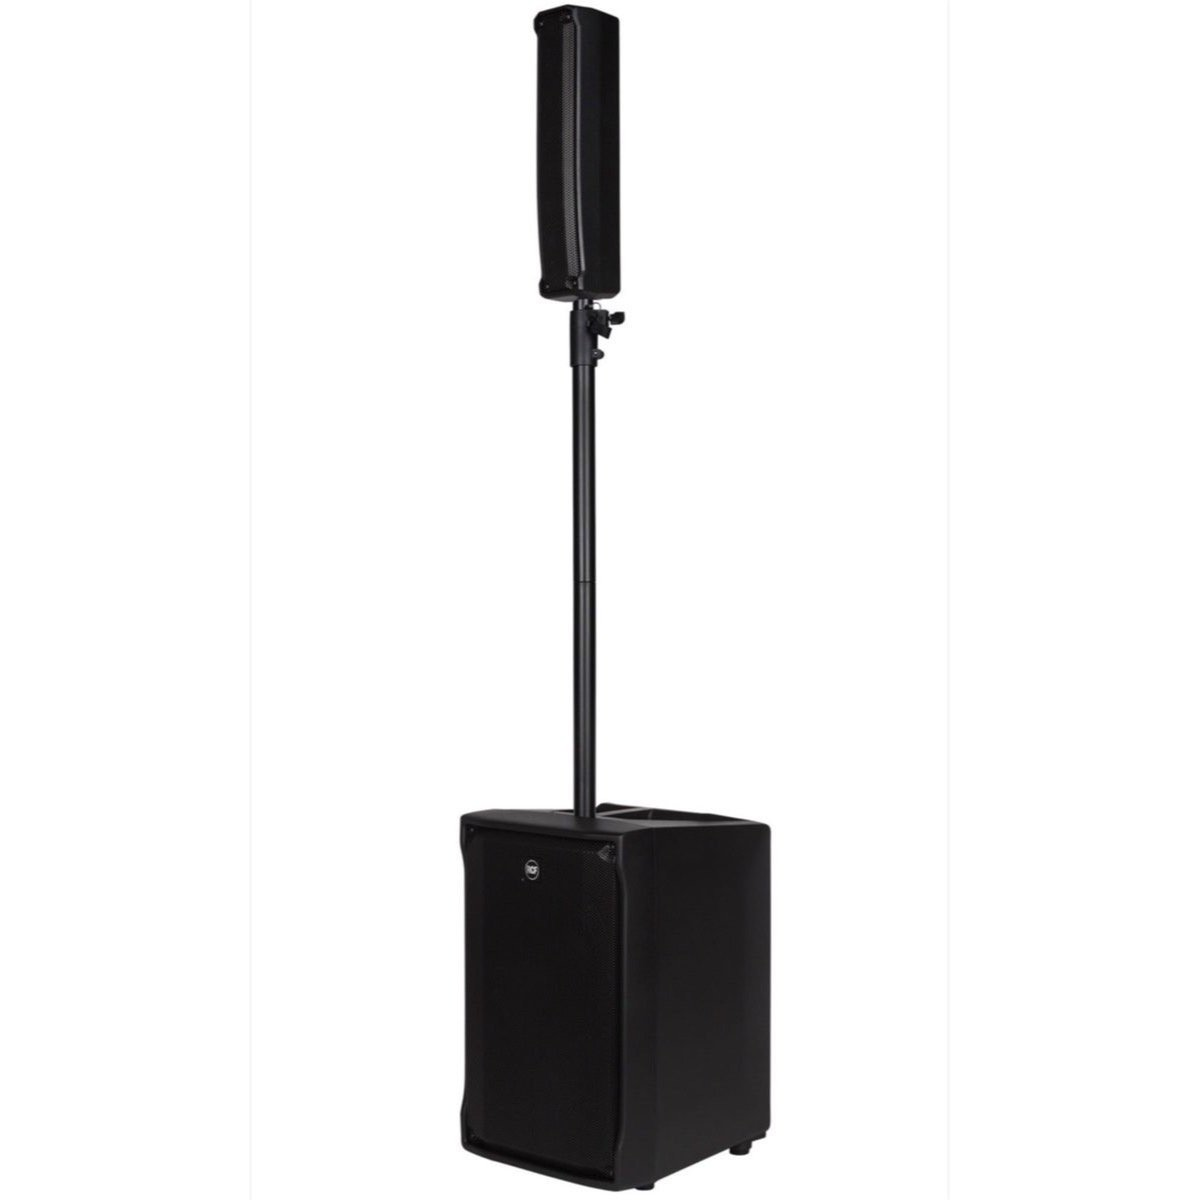 RCF EVOX J8 Active Portable Array PA System, Black